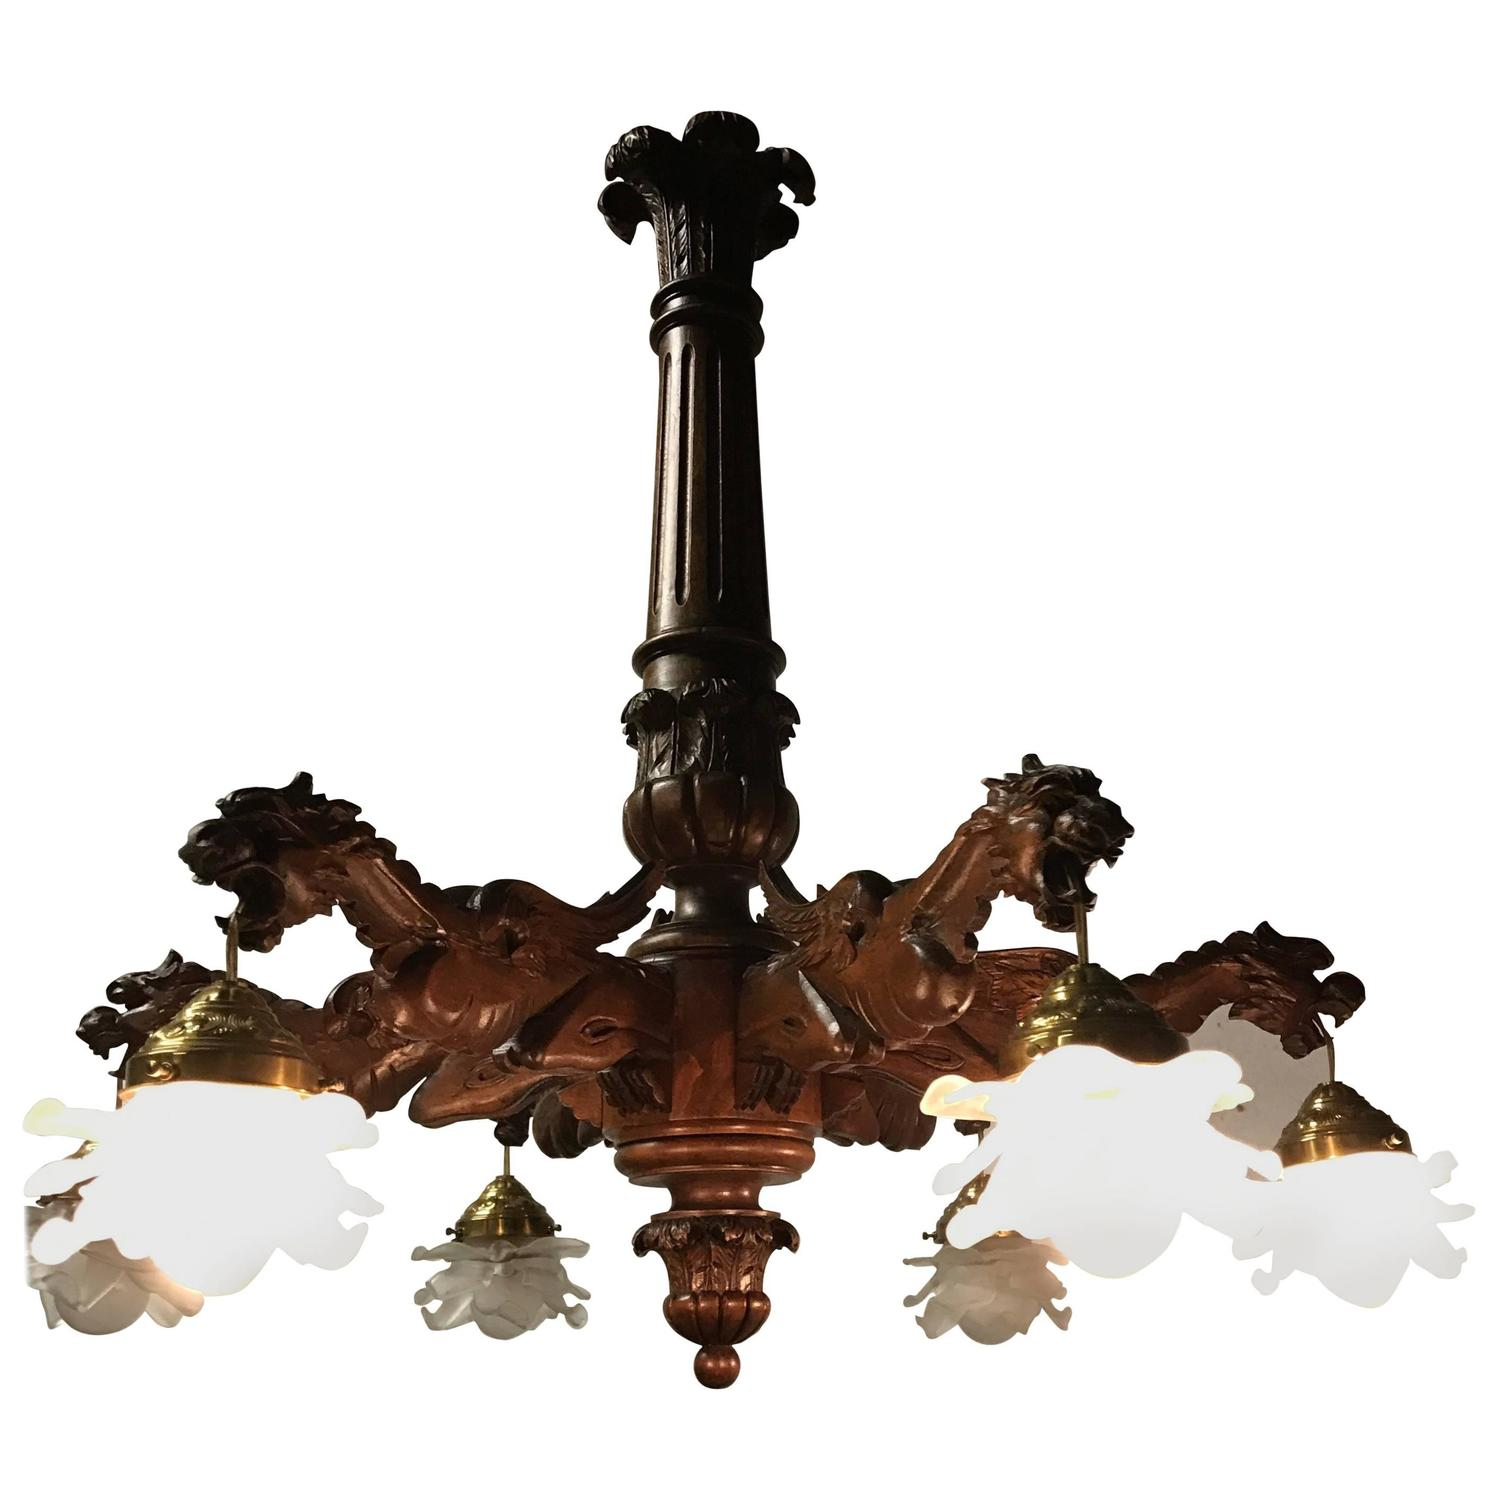 Cast Iron Chandelier with Dragon and Me val Motifs at 1stdibs